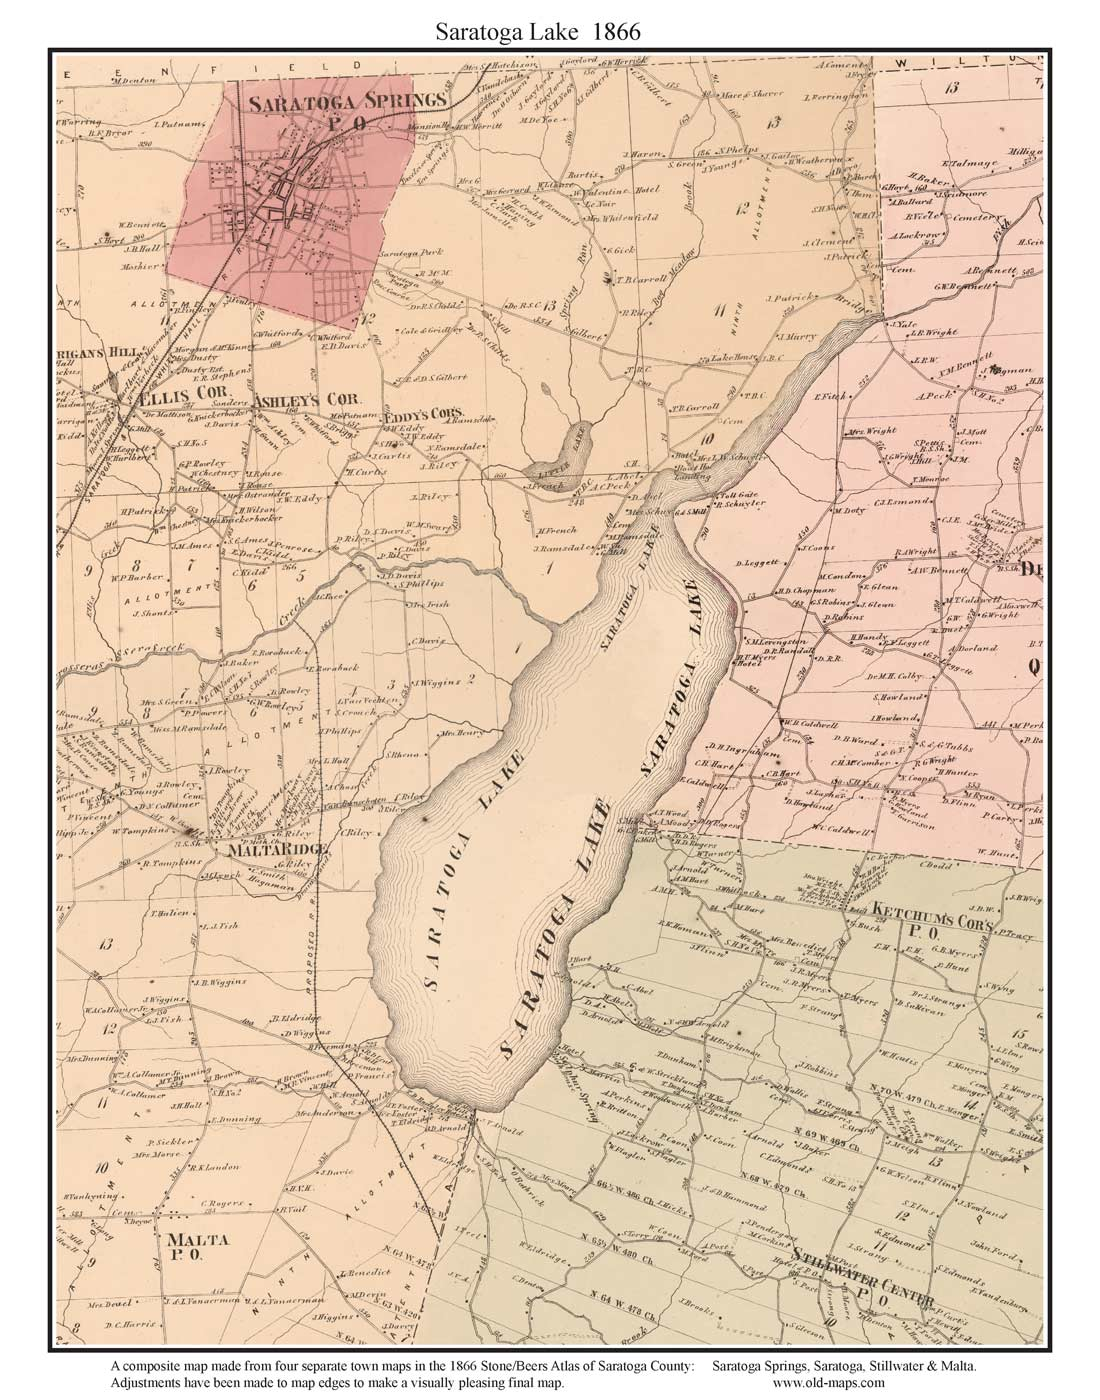 map of saratoga lake new york. prints of old new york state maps